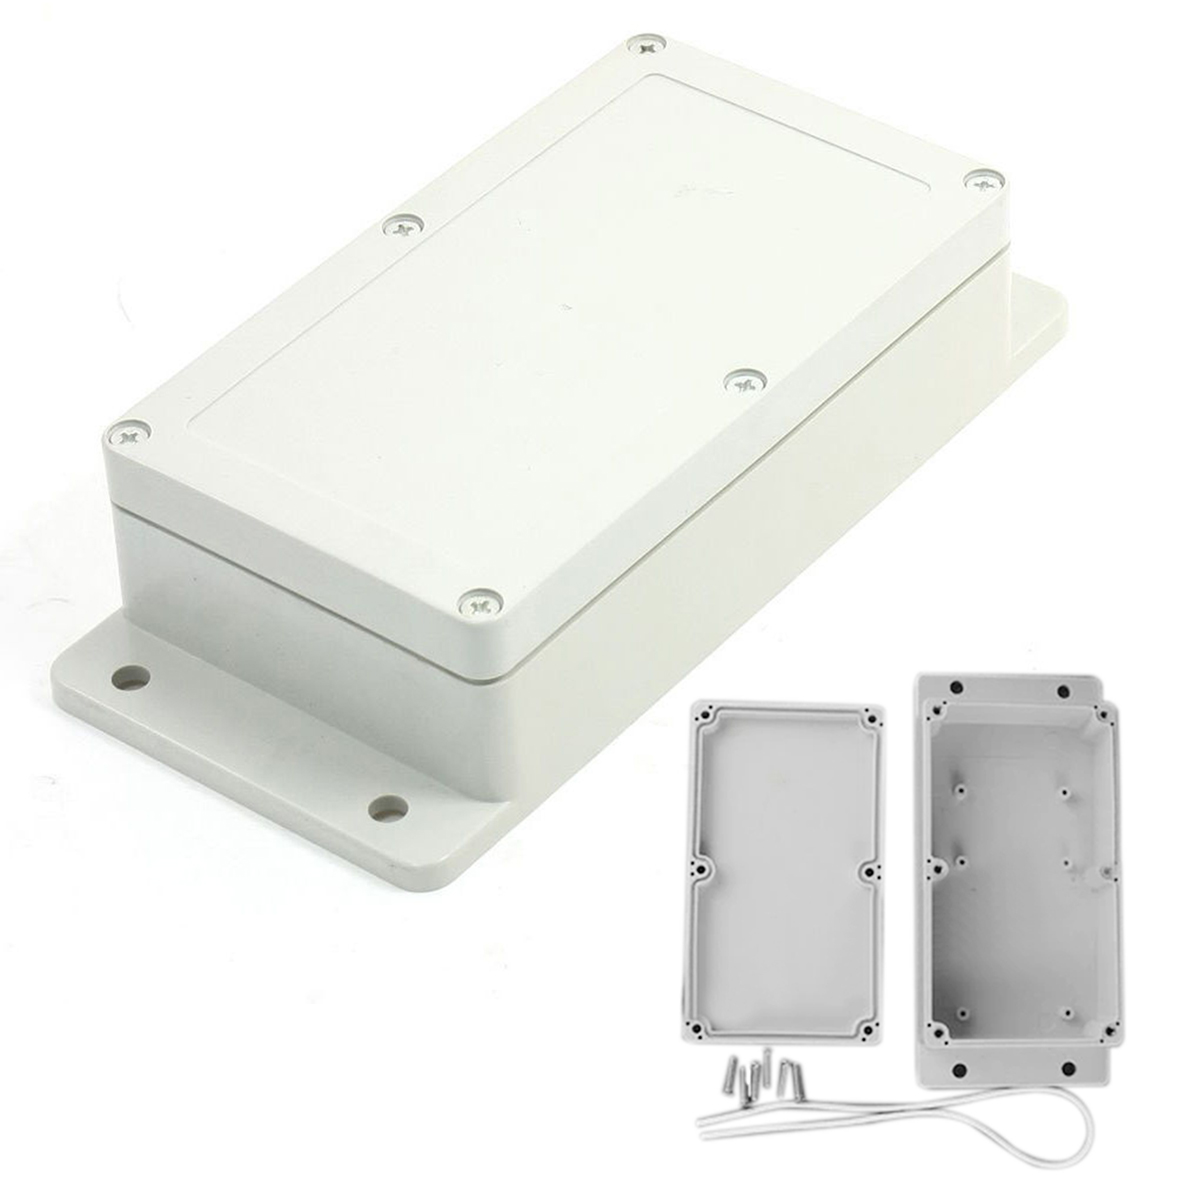 Waterproof Power Junction Box White Plastic Enclosure Case 158mmx90mmx46mm For Electronic Project Instrument 1 piece free shipping plastic enclosure for wall mount amplifier case waterproof plastic junction box 110 65 28mm